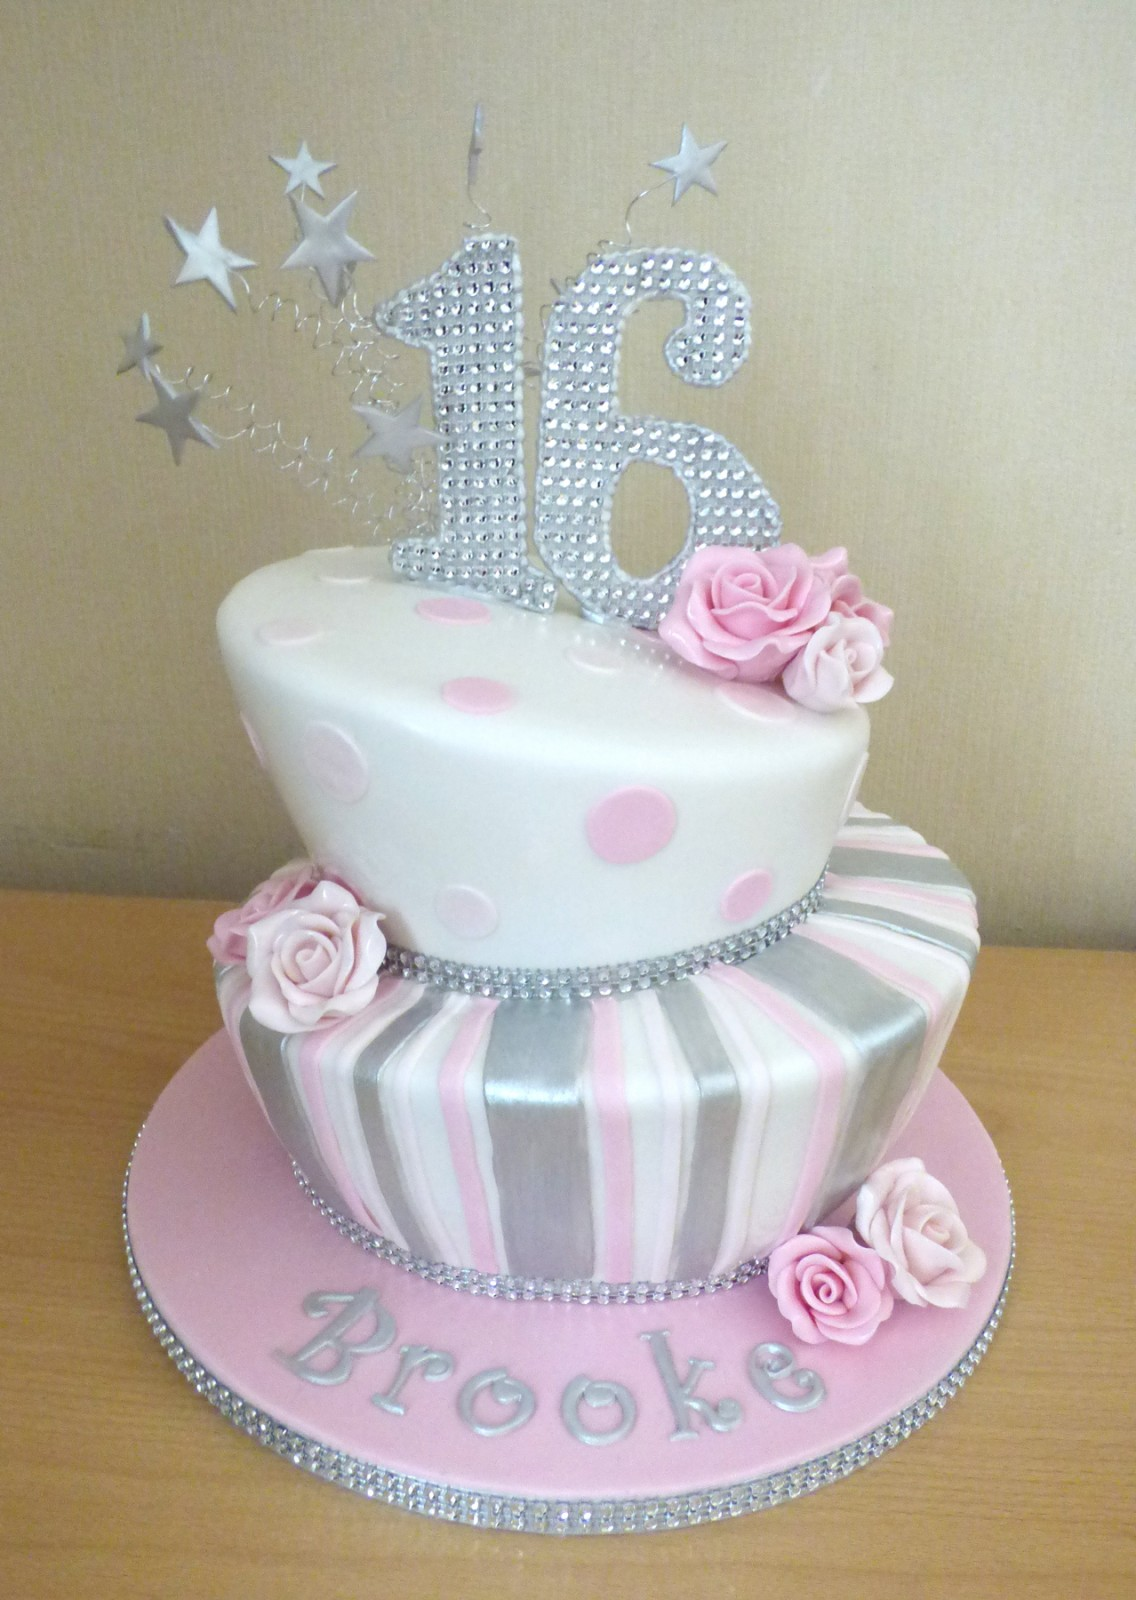 Magnificent 2 Tier Bling Sweet Sixteen Birthday Cake Susies Cakes Funny Birthday Cards Online Elaedamsfinfo